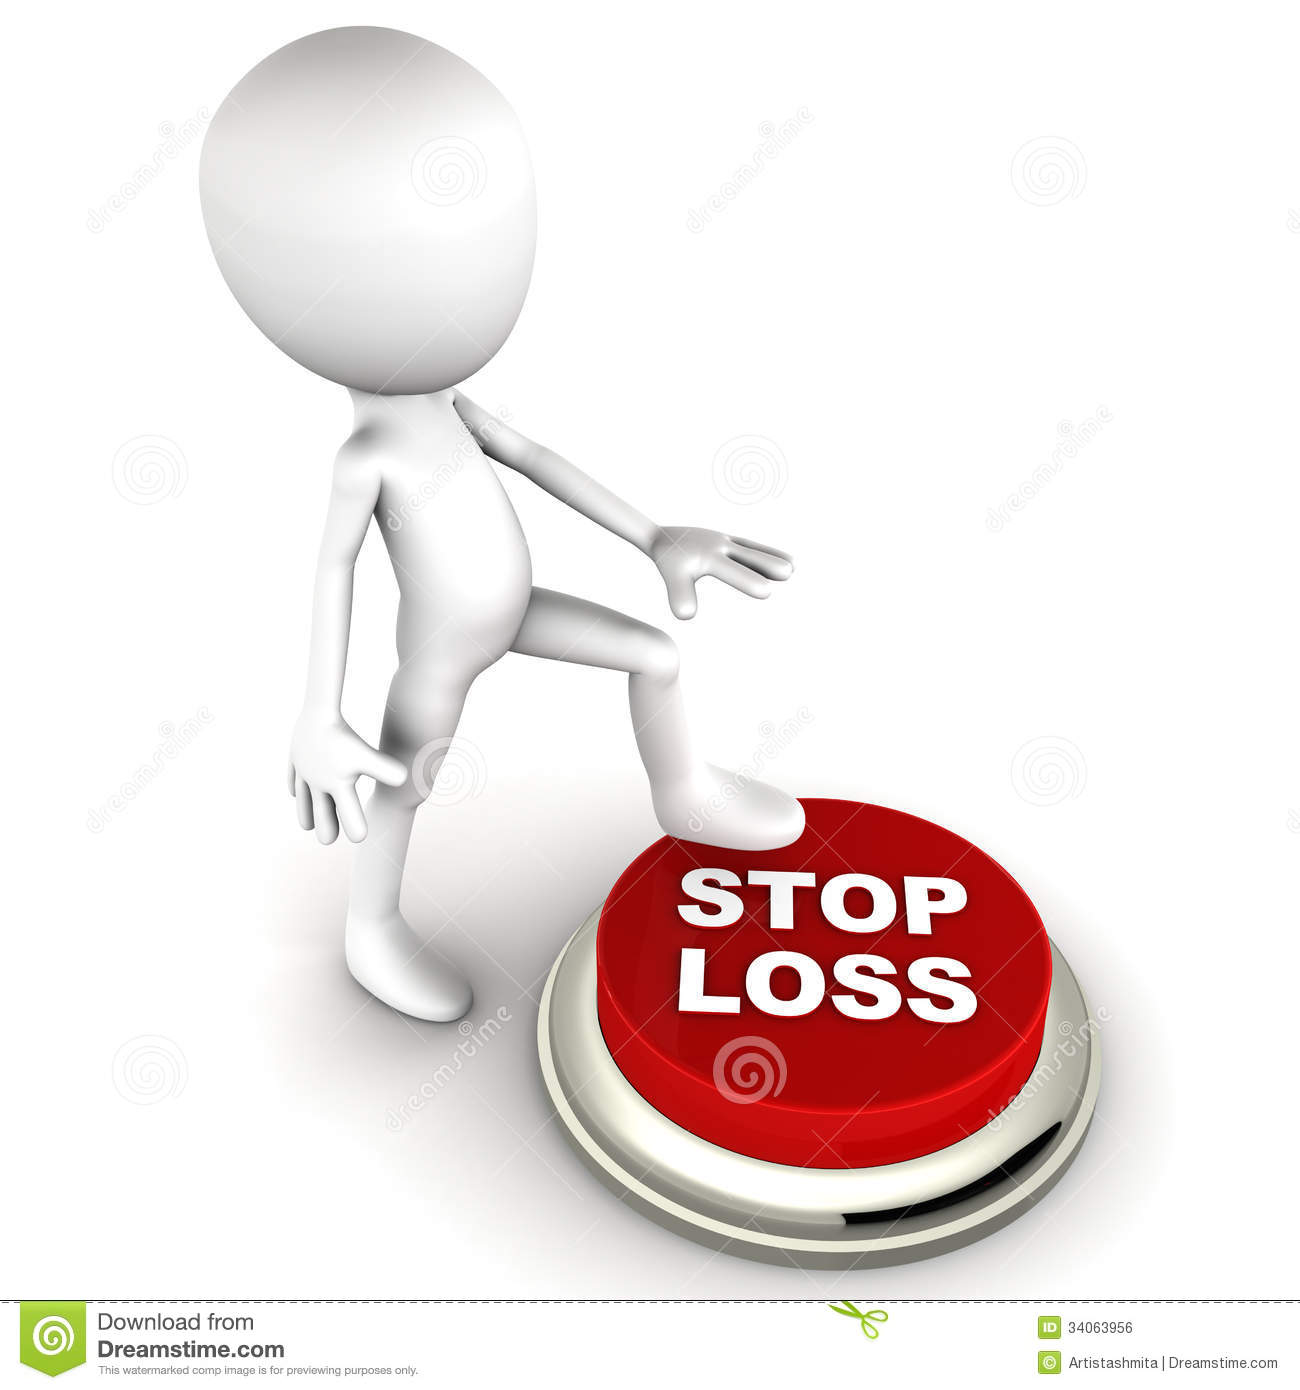 Stock Quotes Free Real Time: Stop Loss Royalty Free Stock Image